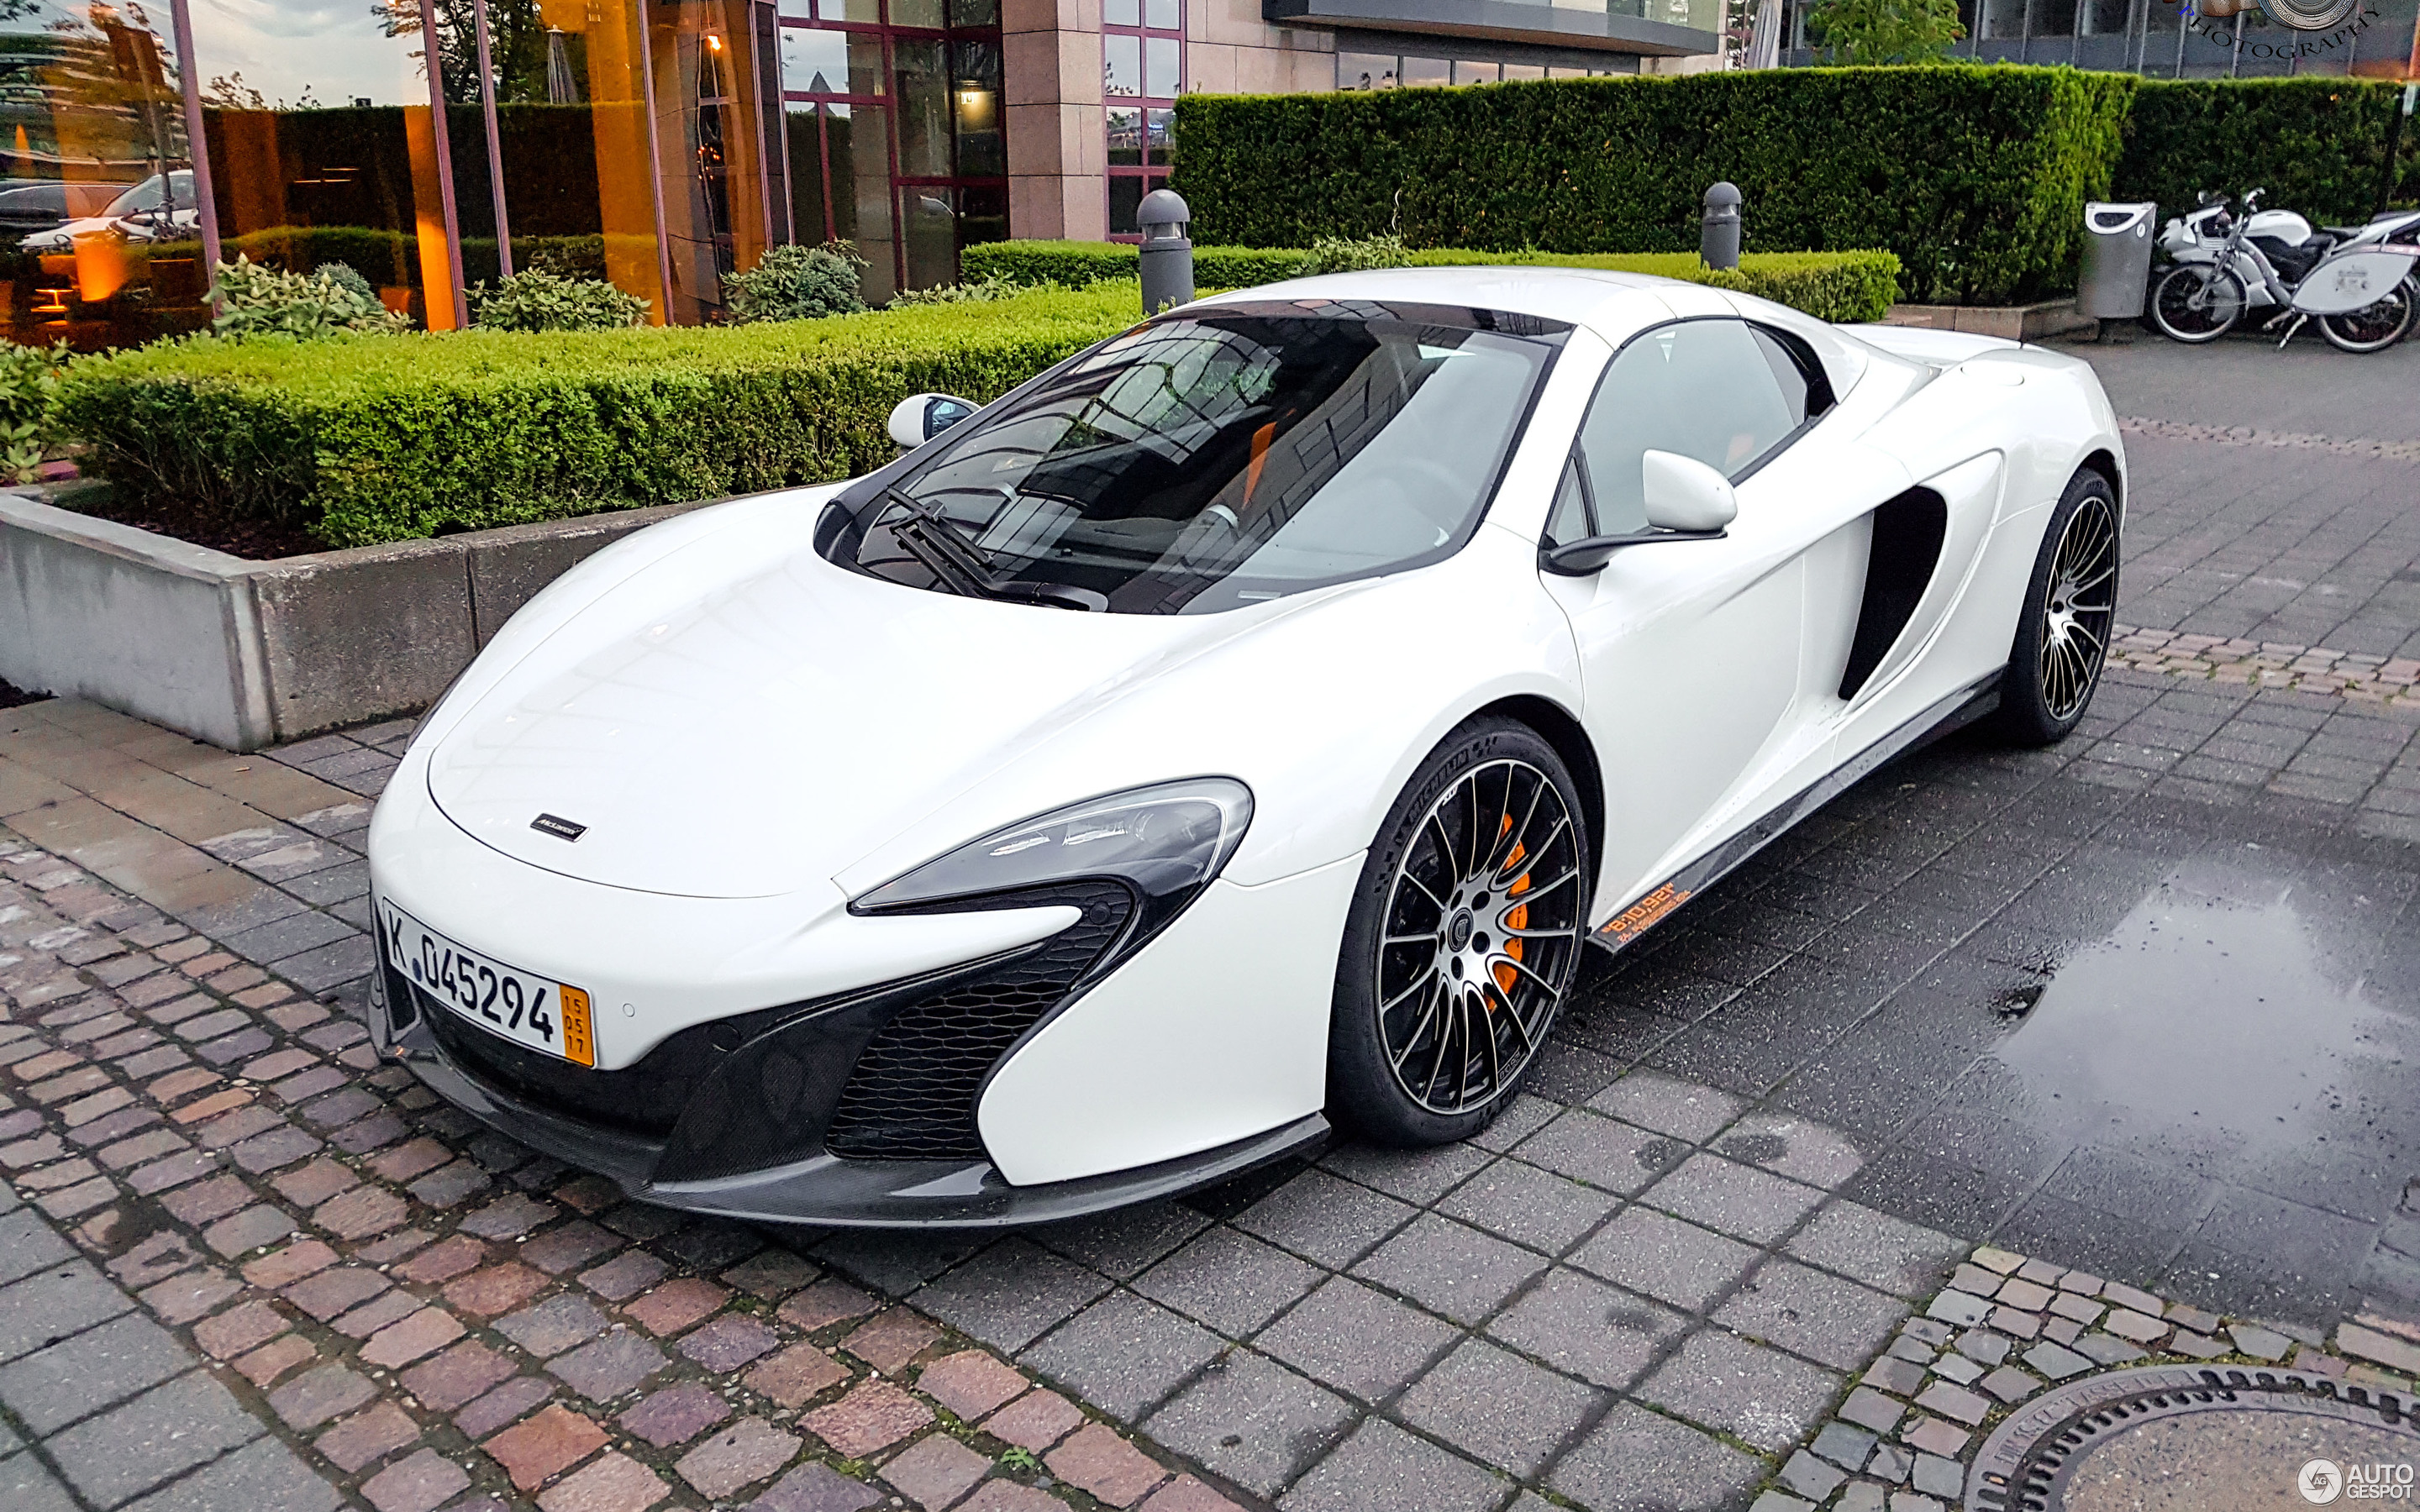 McLaren 650S Spider Nürburgring Record Edition - 12 May 2017